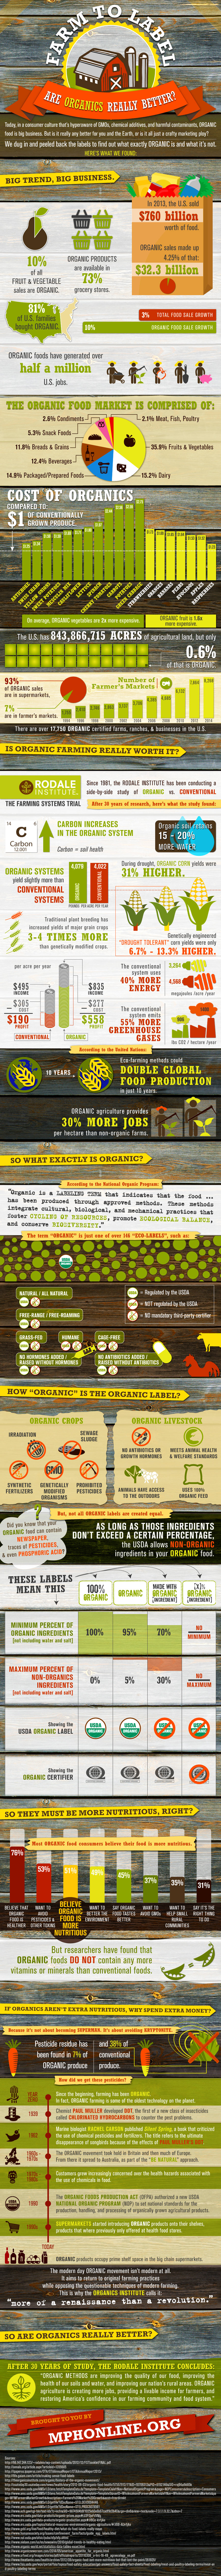 Are Organics really better? [Infographic] | ecogreenlove